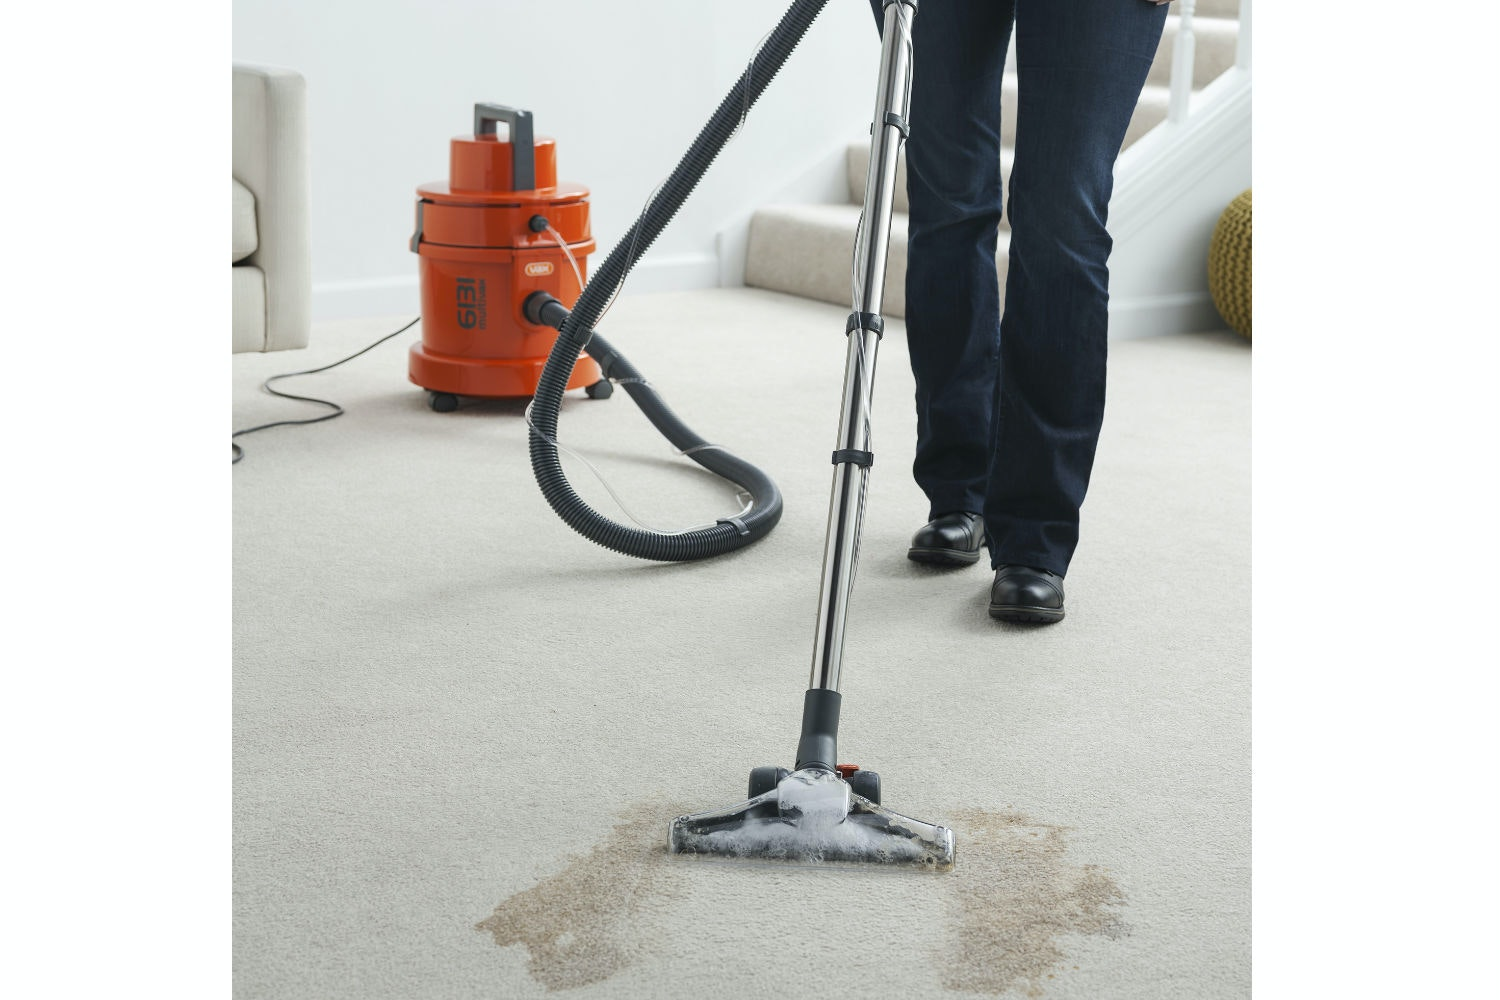 vax-carpet-cleaner-6131T